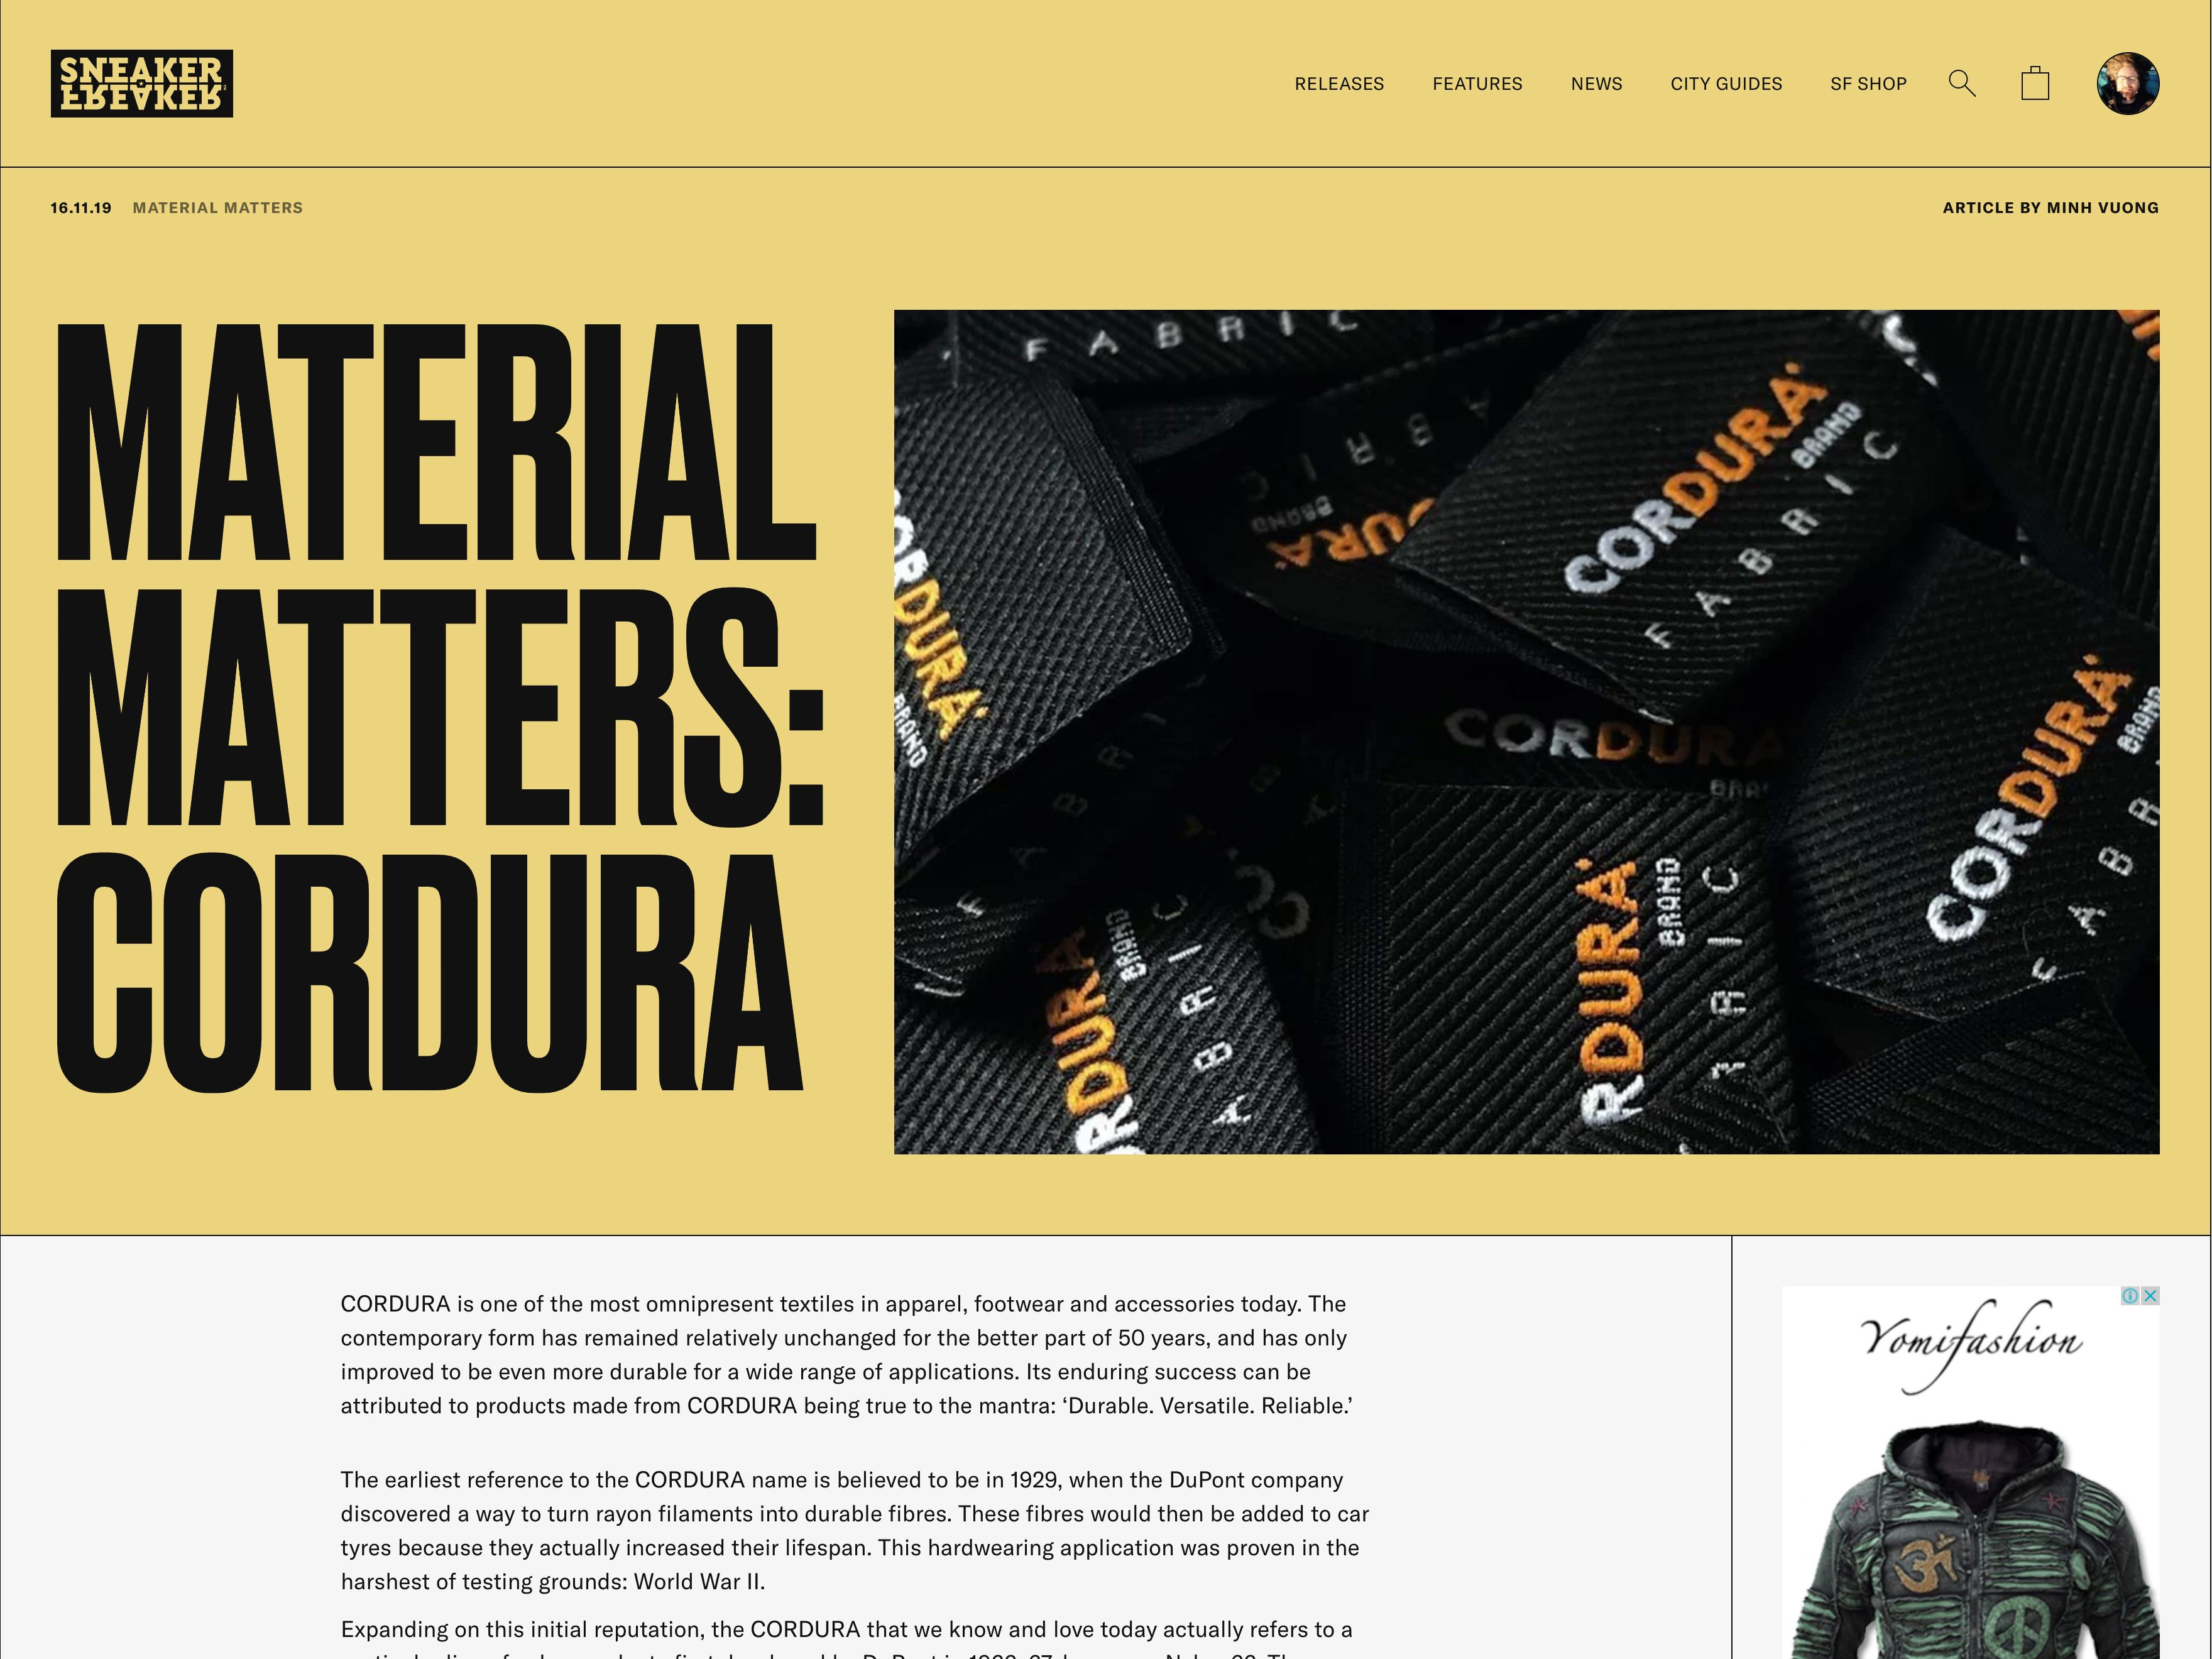 Sneaker Freaker Material Matters feature article